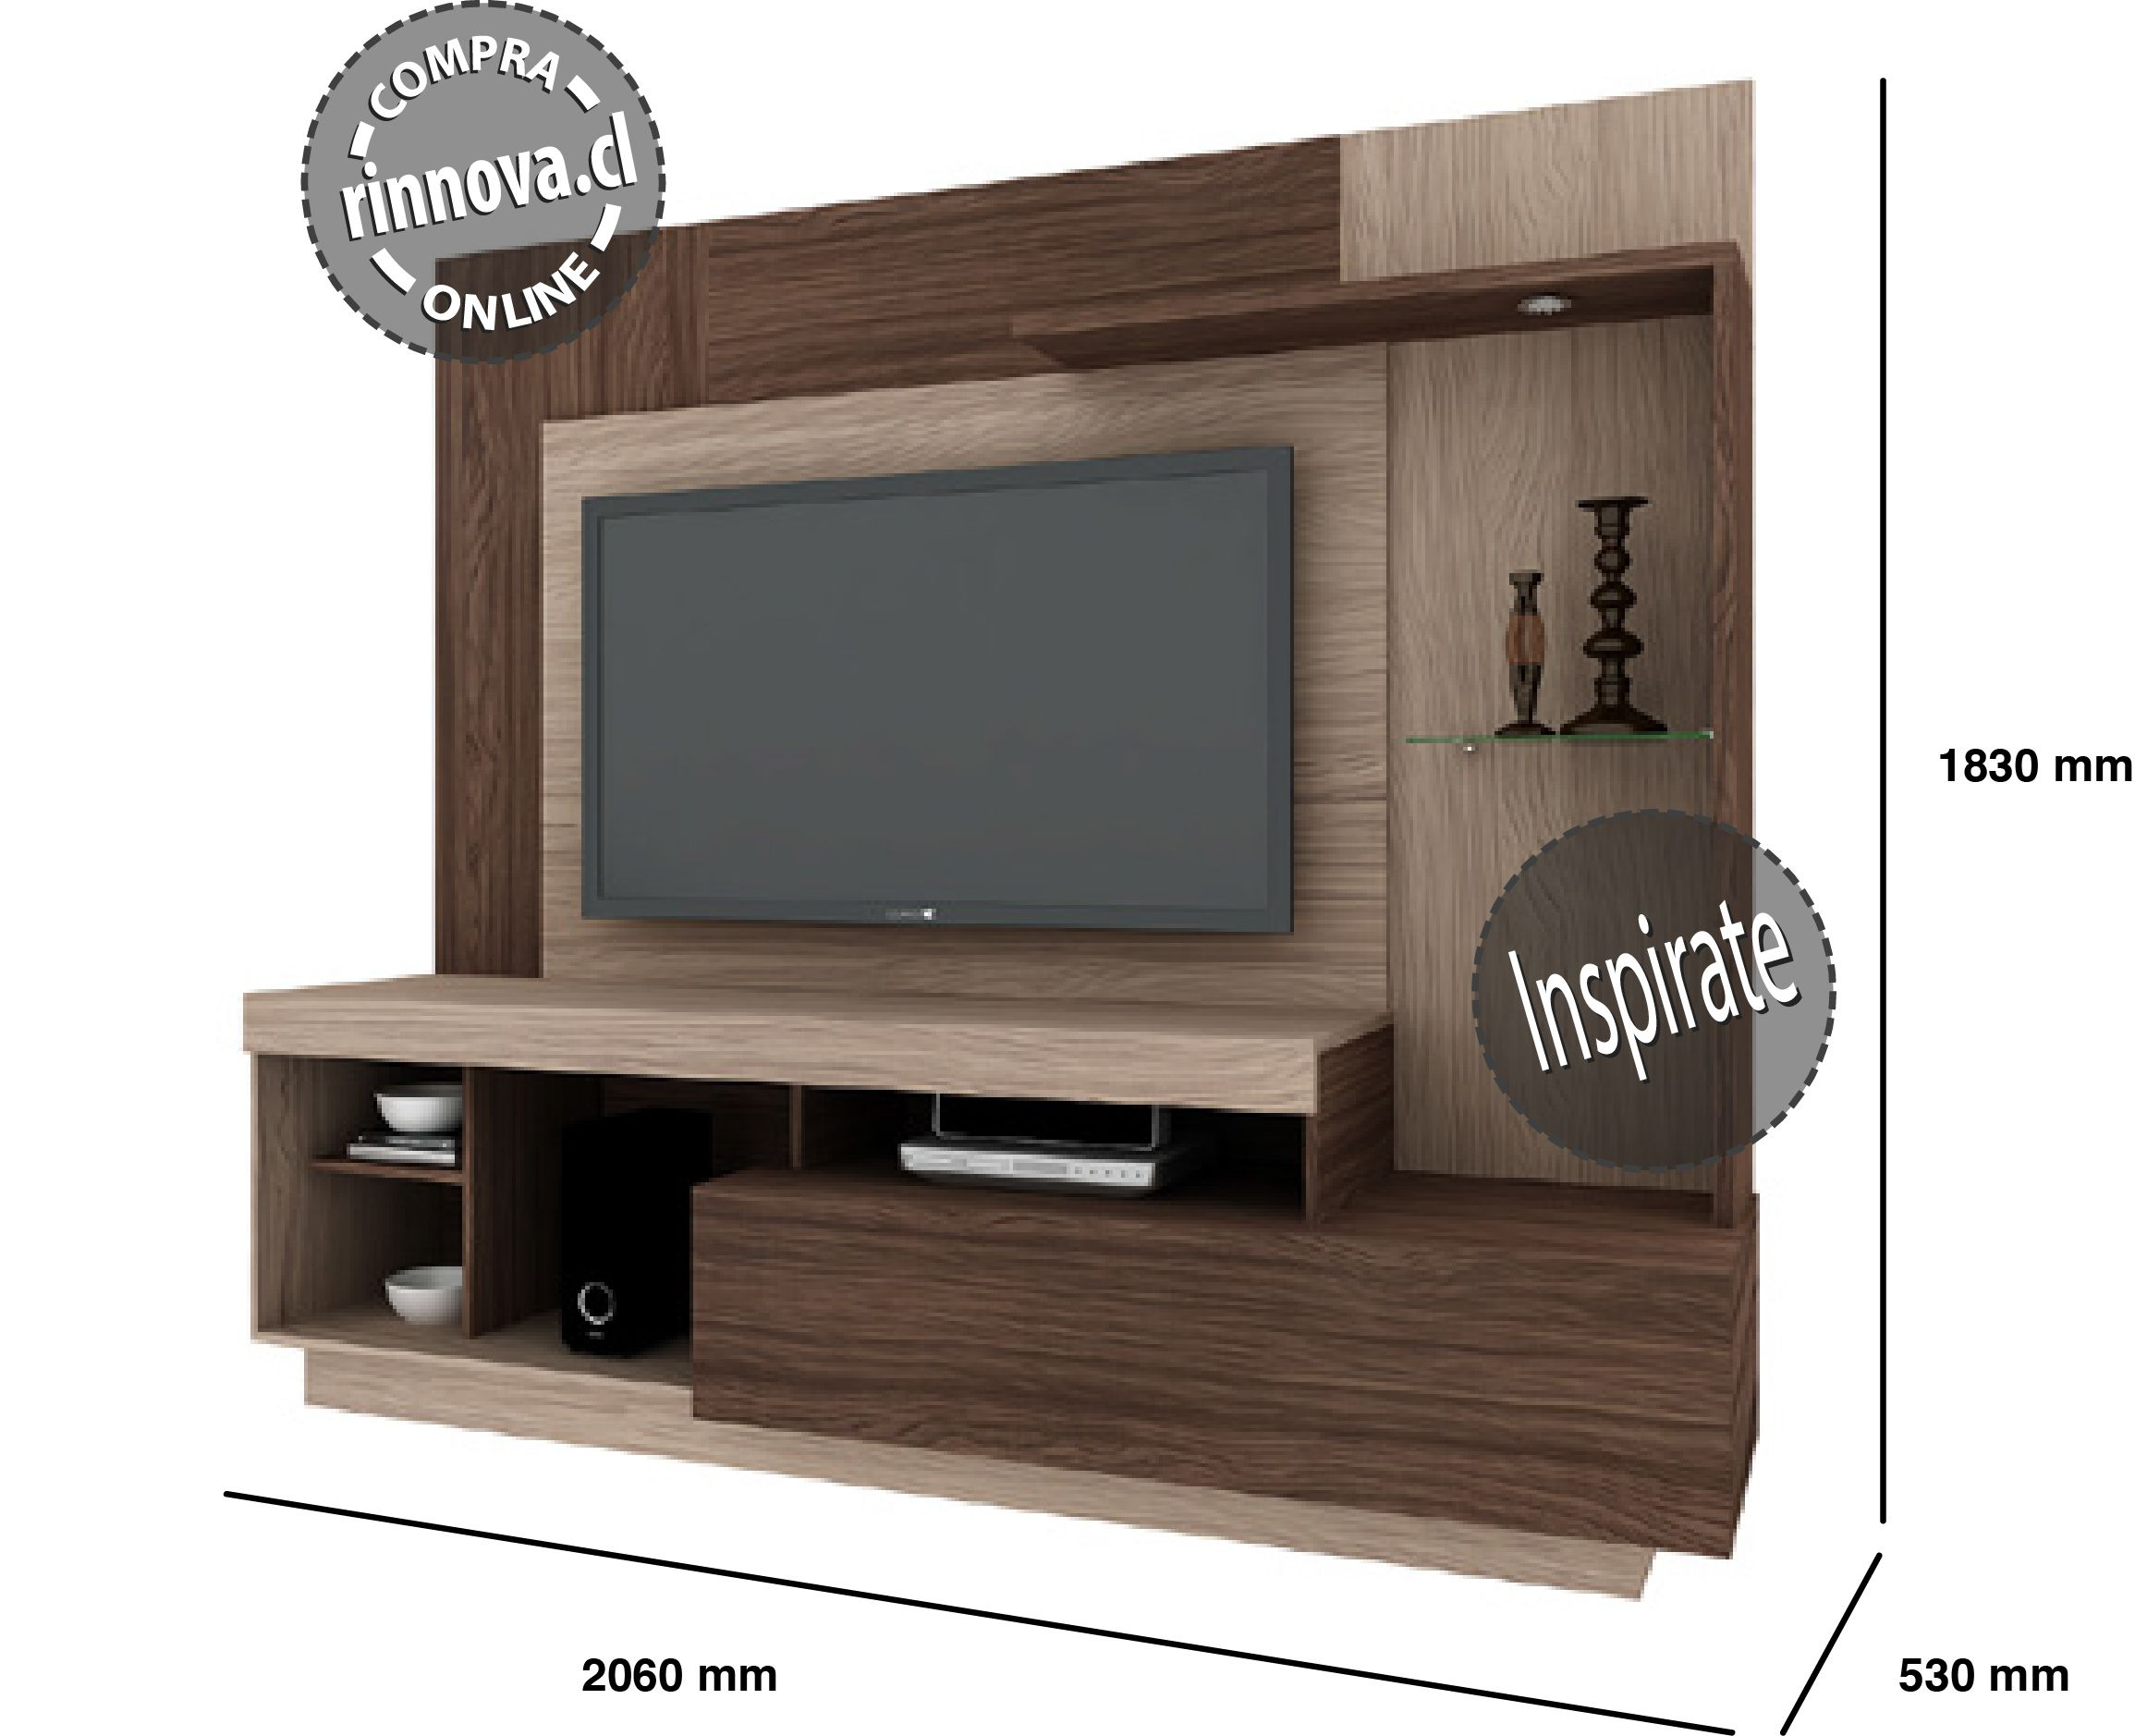 Www Rinnova Cl Mueble Led Tv Rinnova Pinterest Cl Tv Walls  # Muebles Fiasini